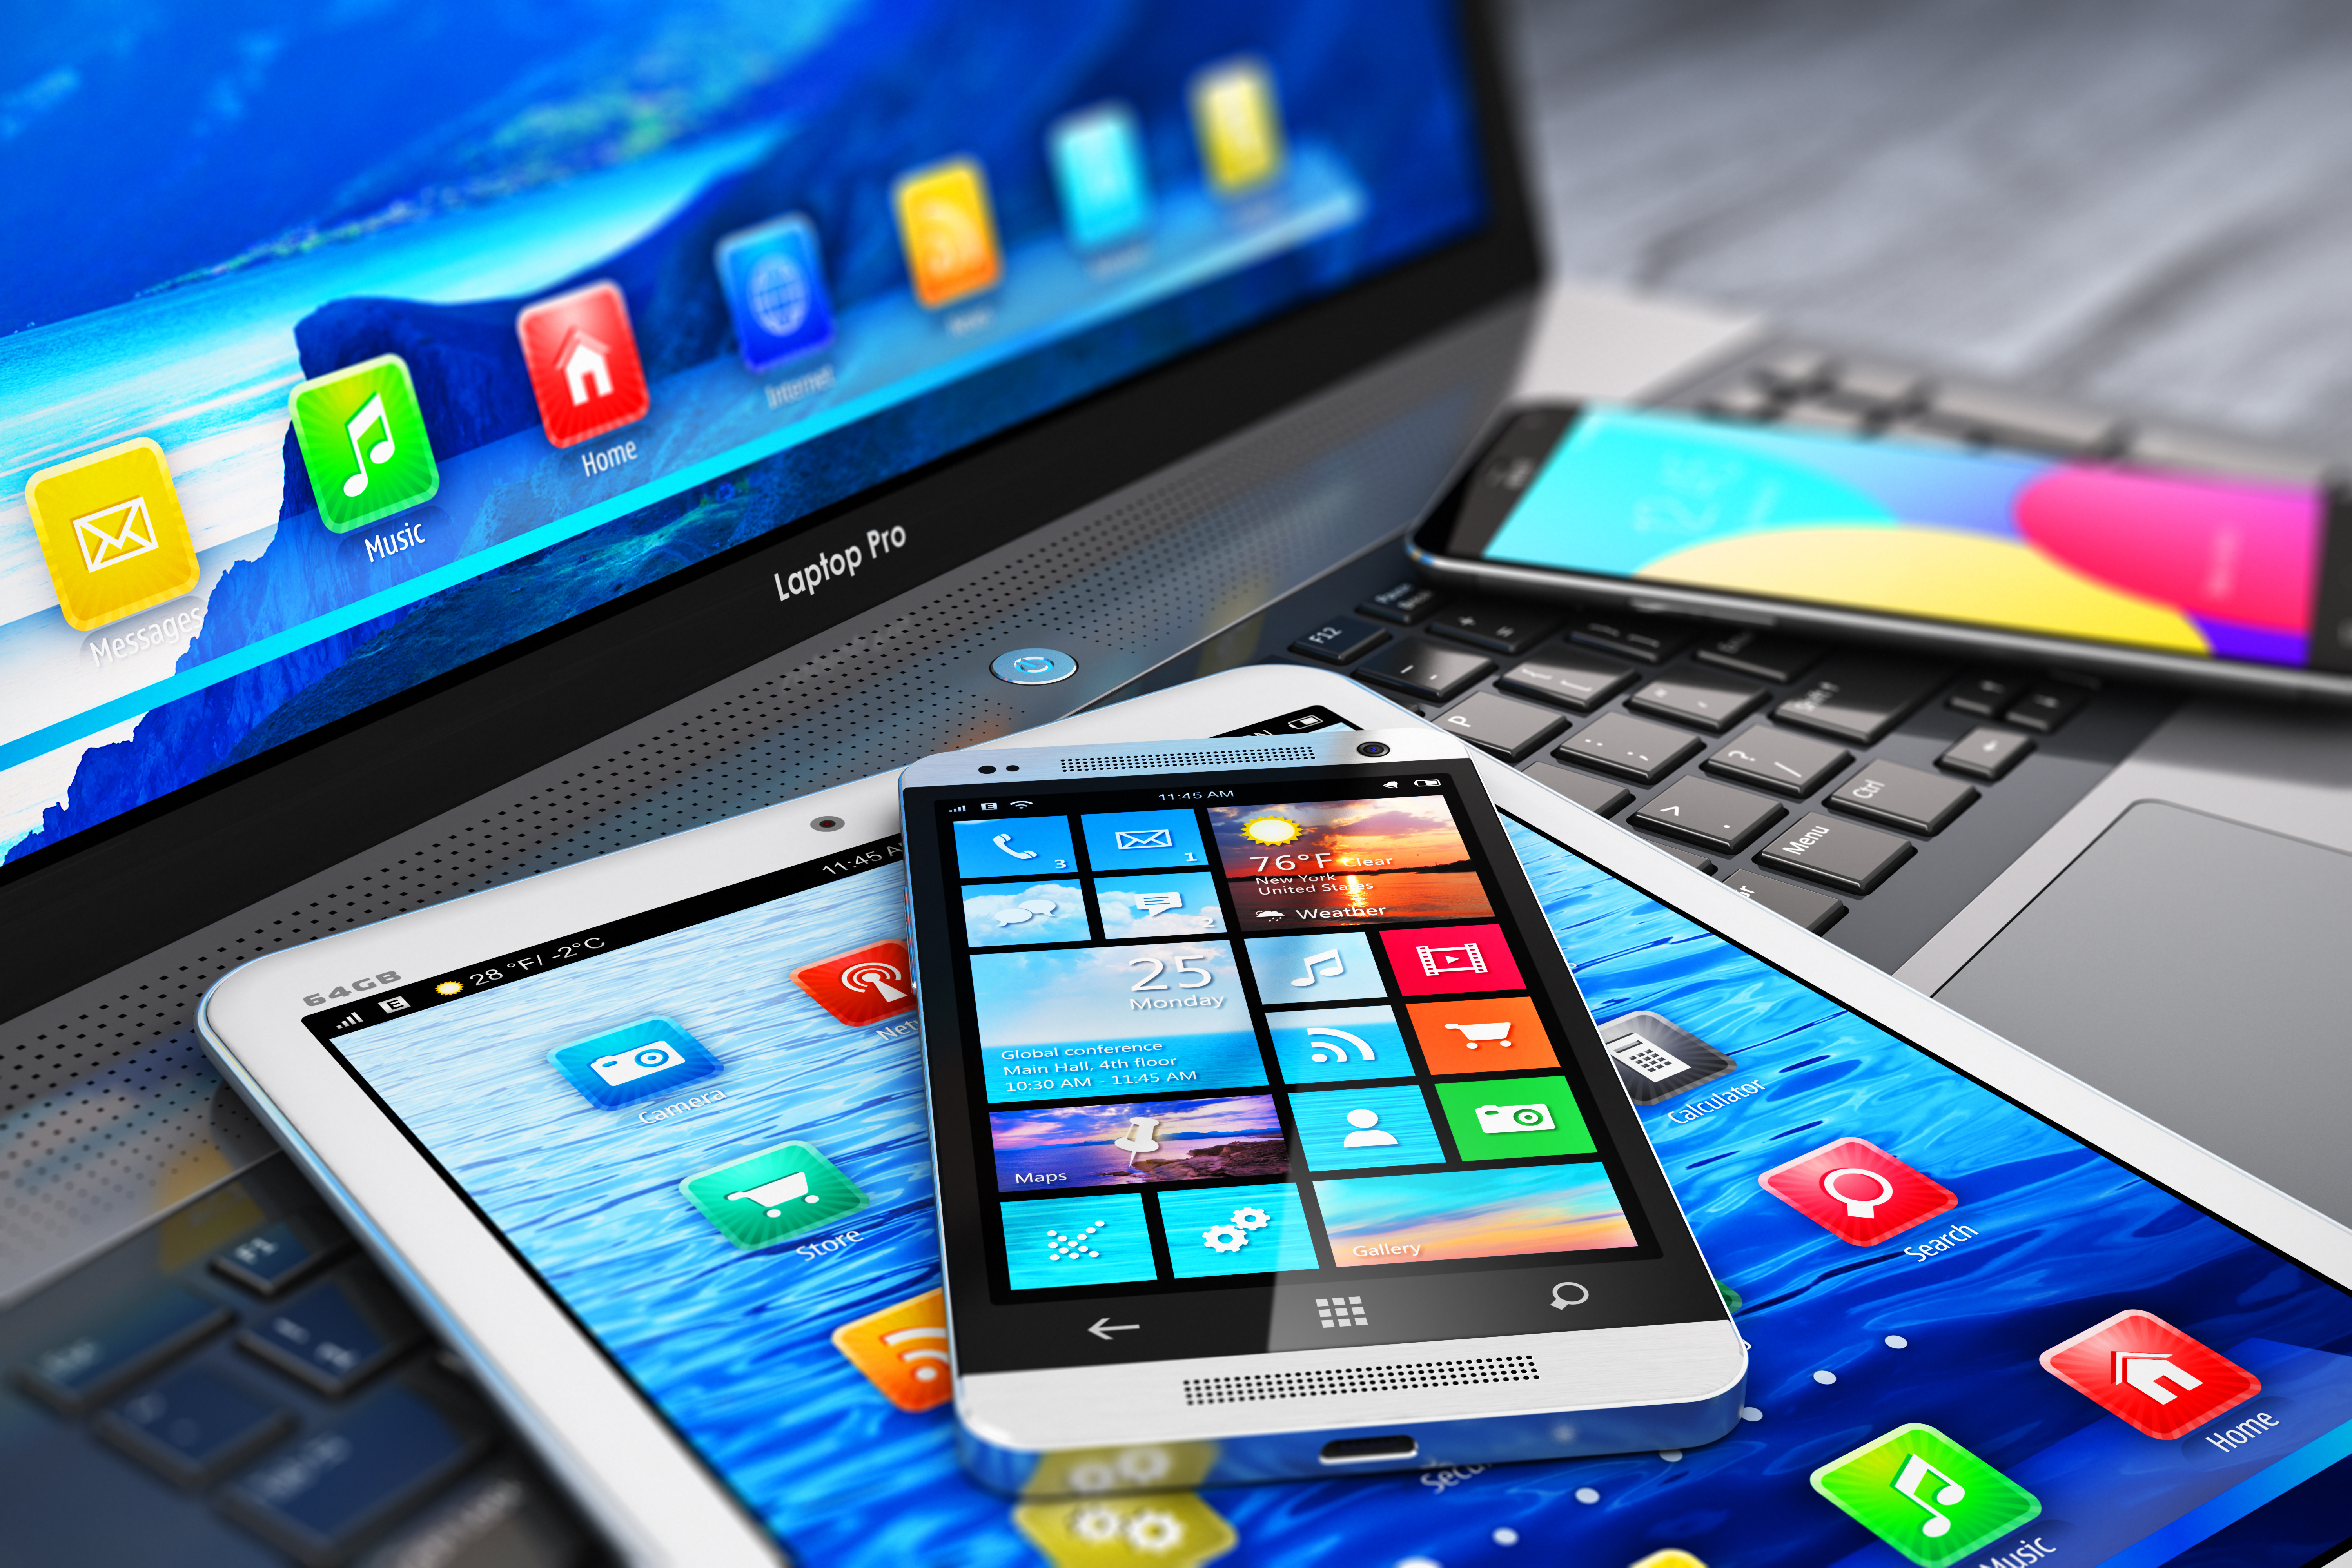 Mobile, tablet and laptop devices